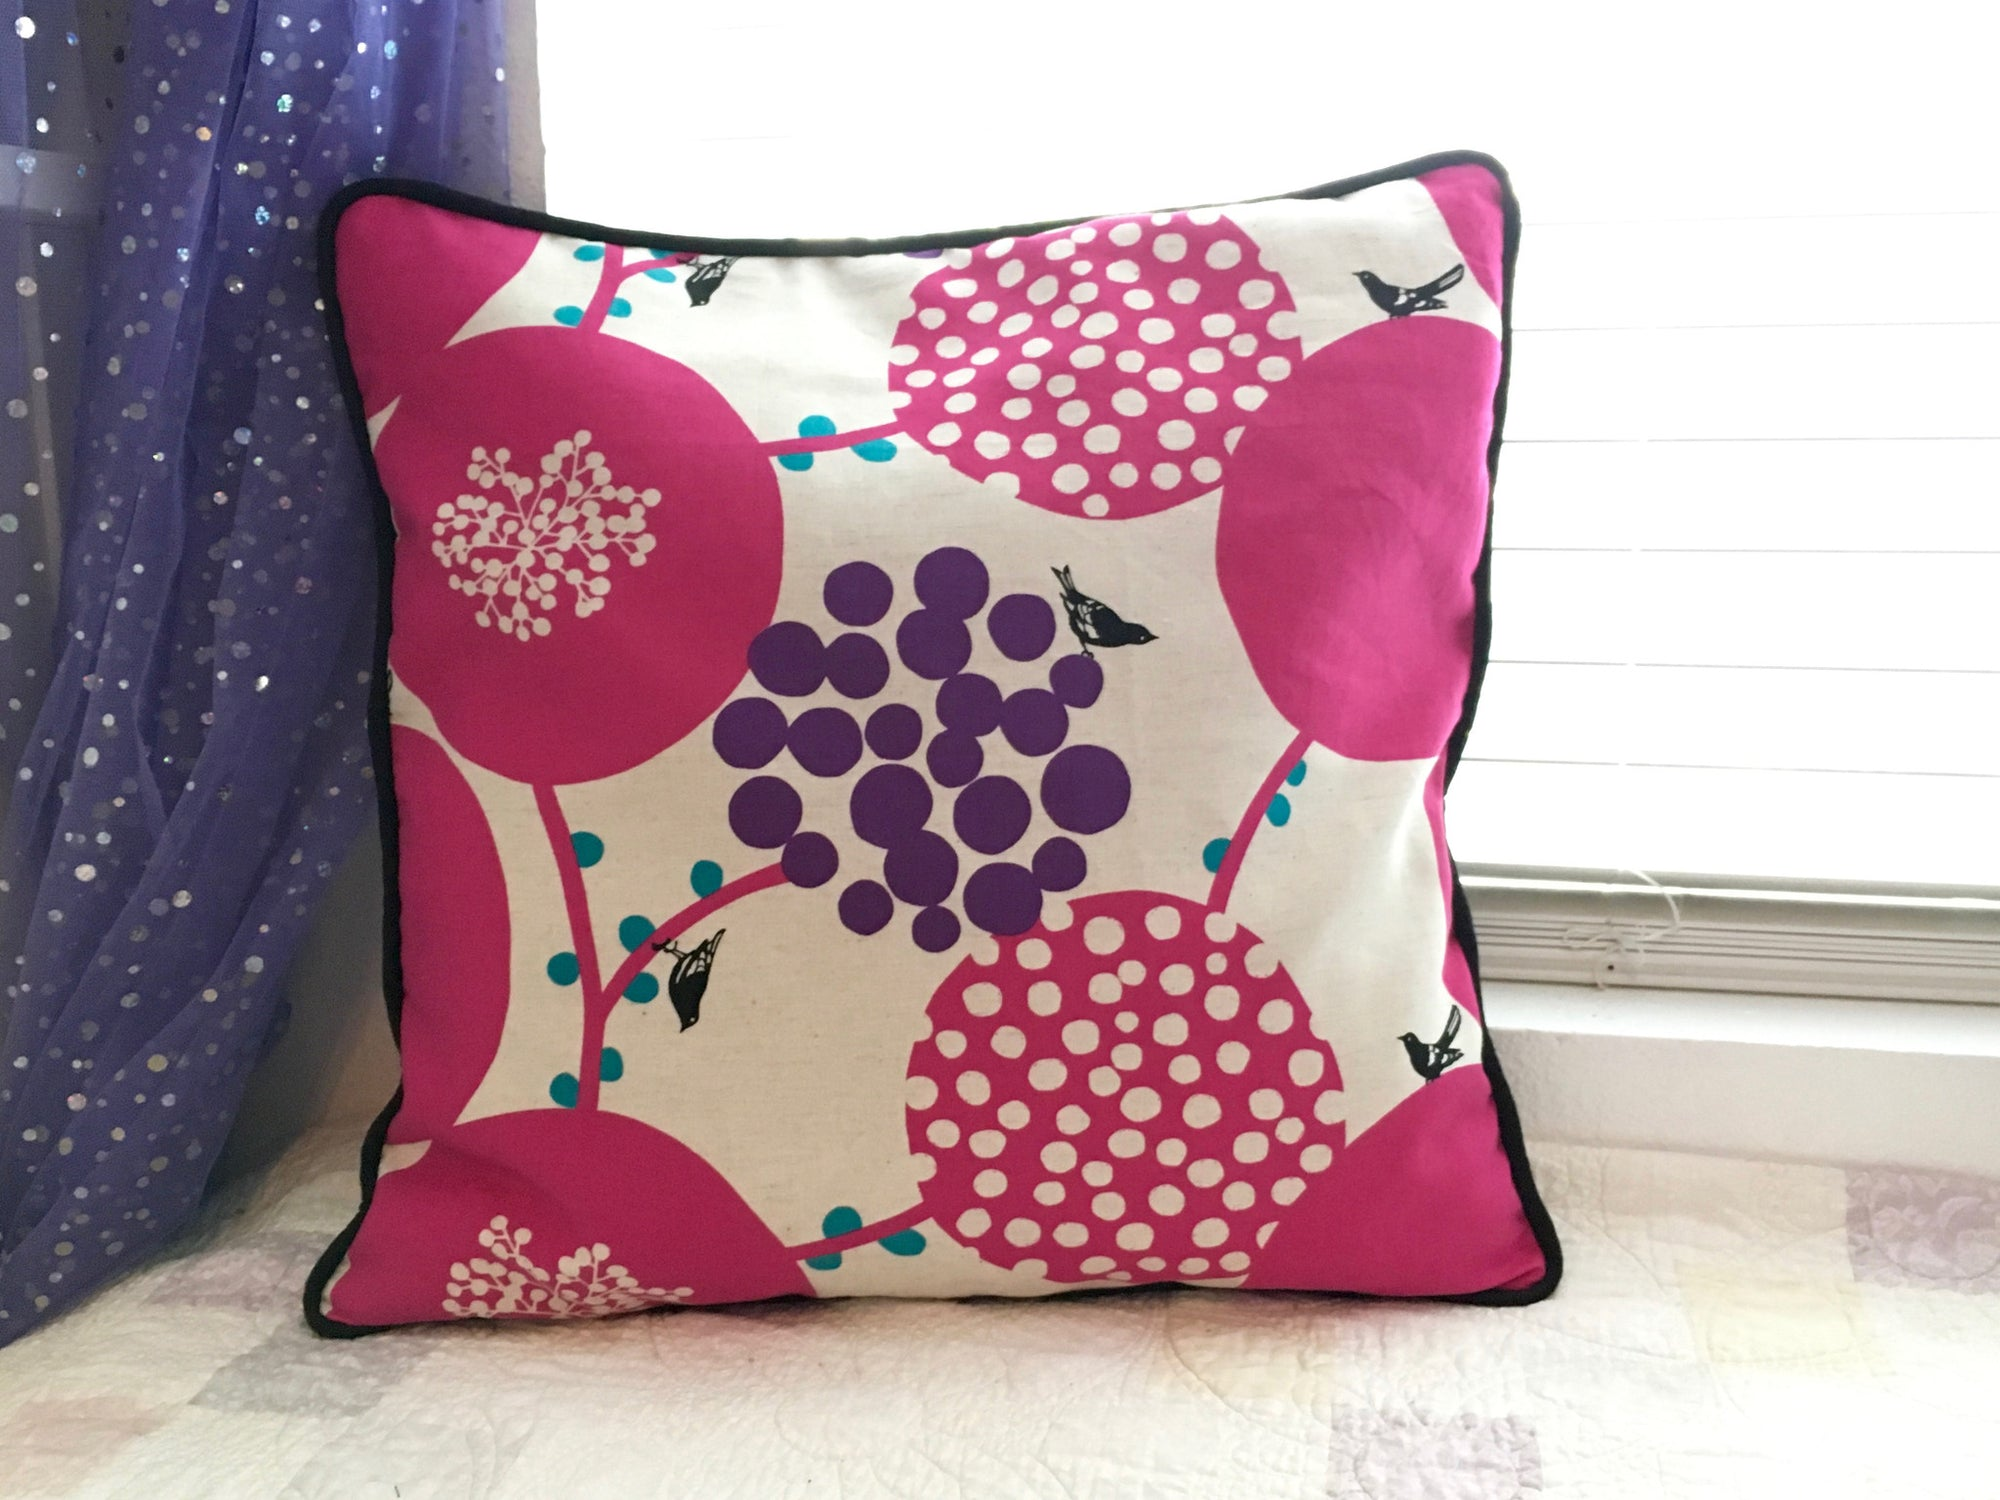 Sew Home - Corded Throw Pillow & a Giveaway!